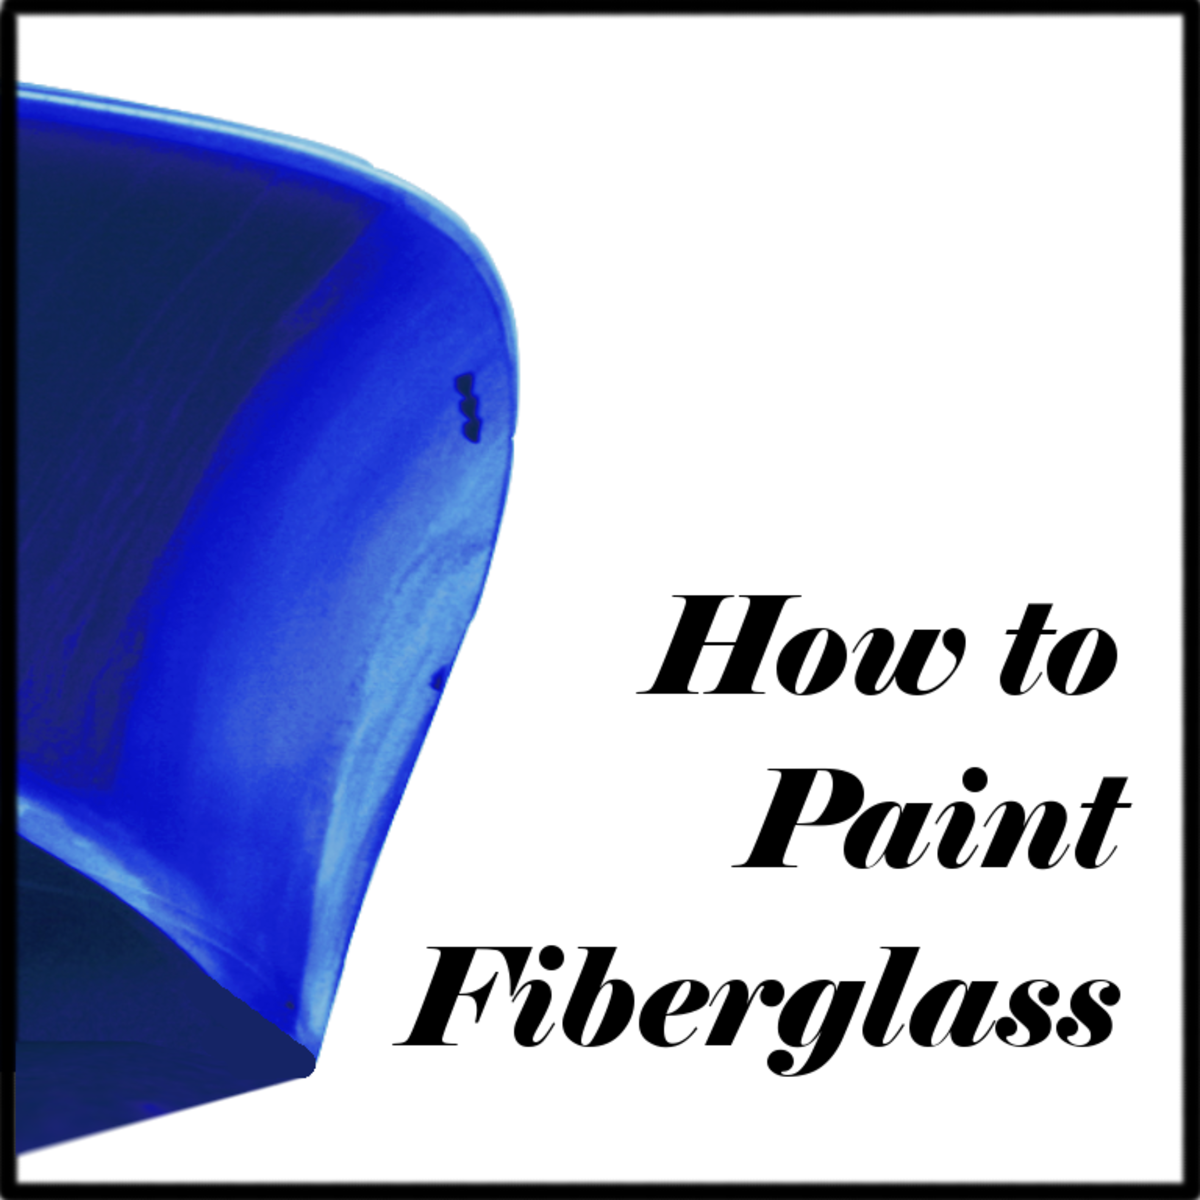 How to Paint Fiberglass